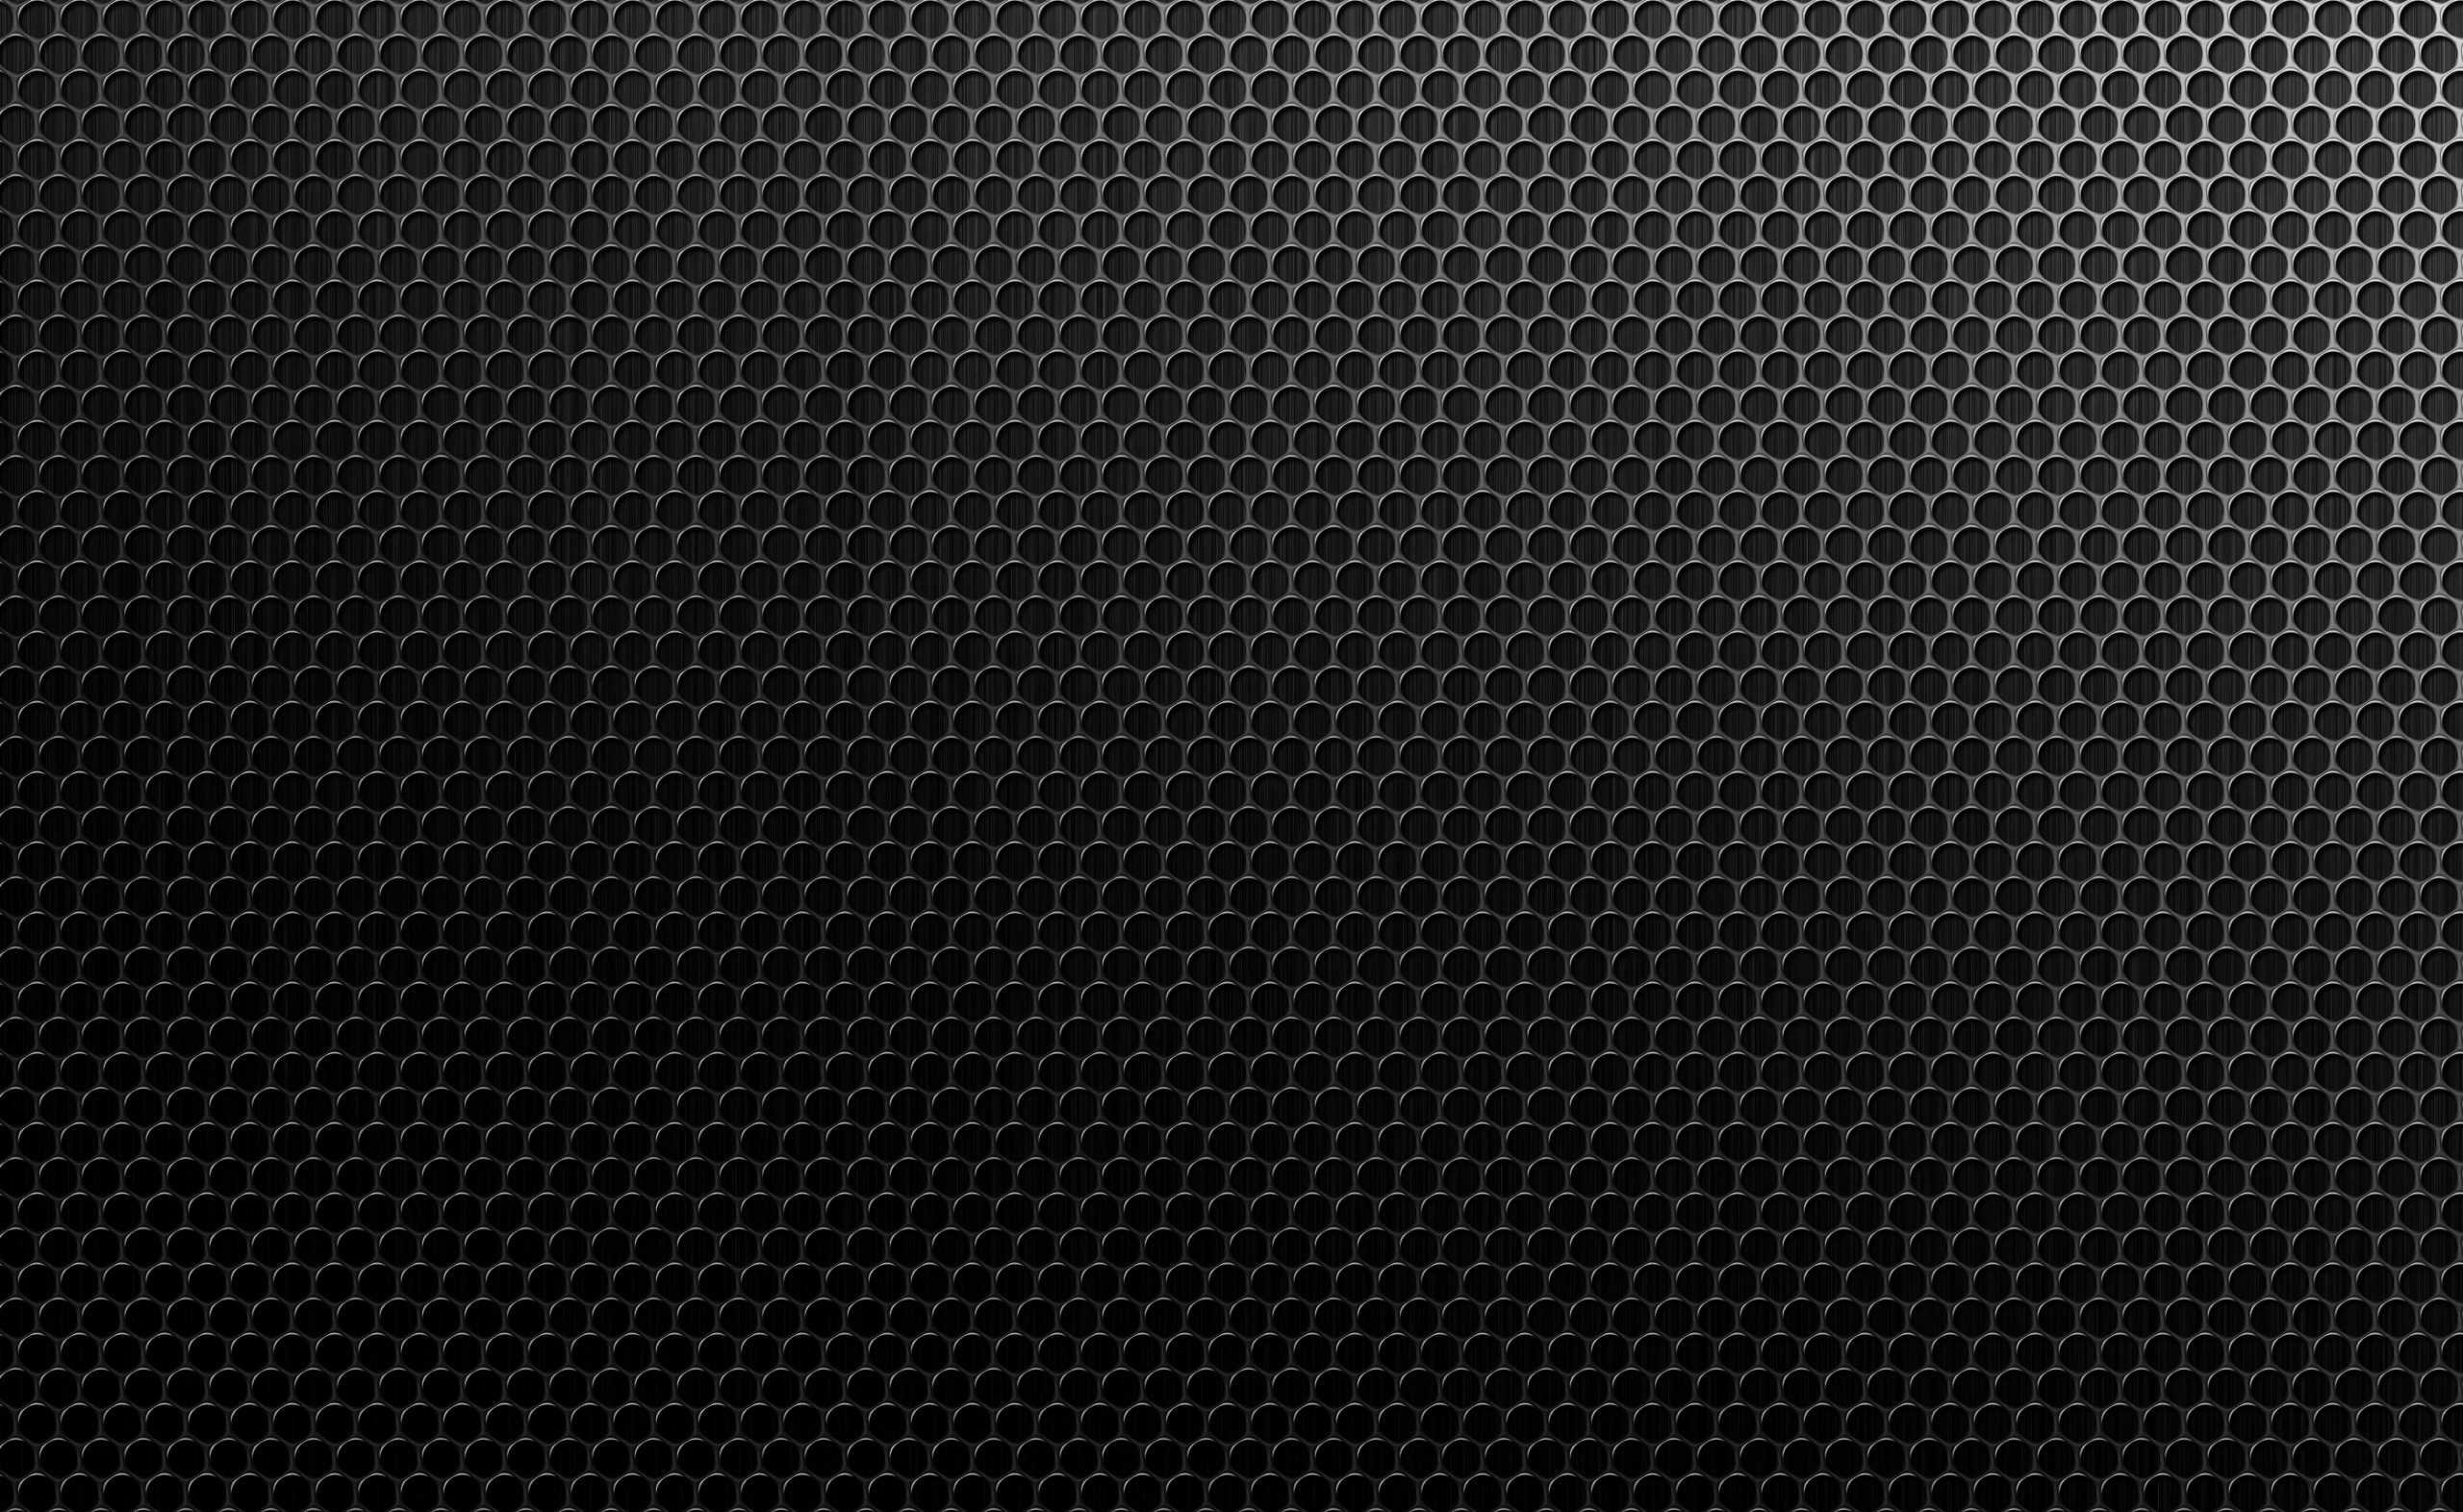 Texture background wallpaper black wallpapers textures download Stock #9918